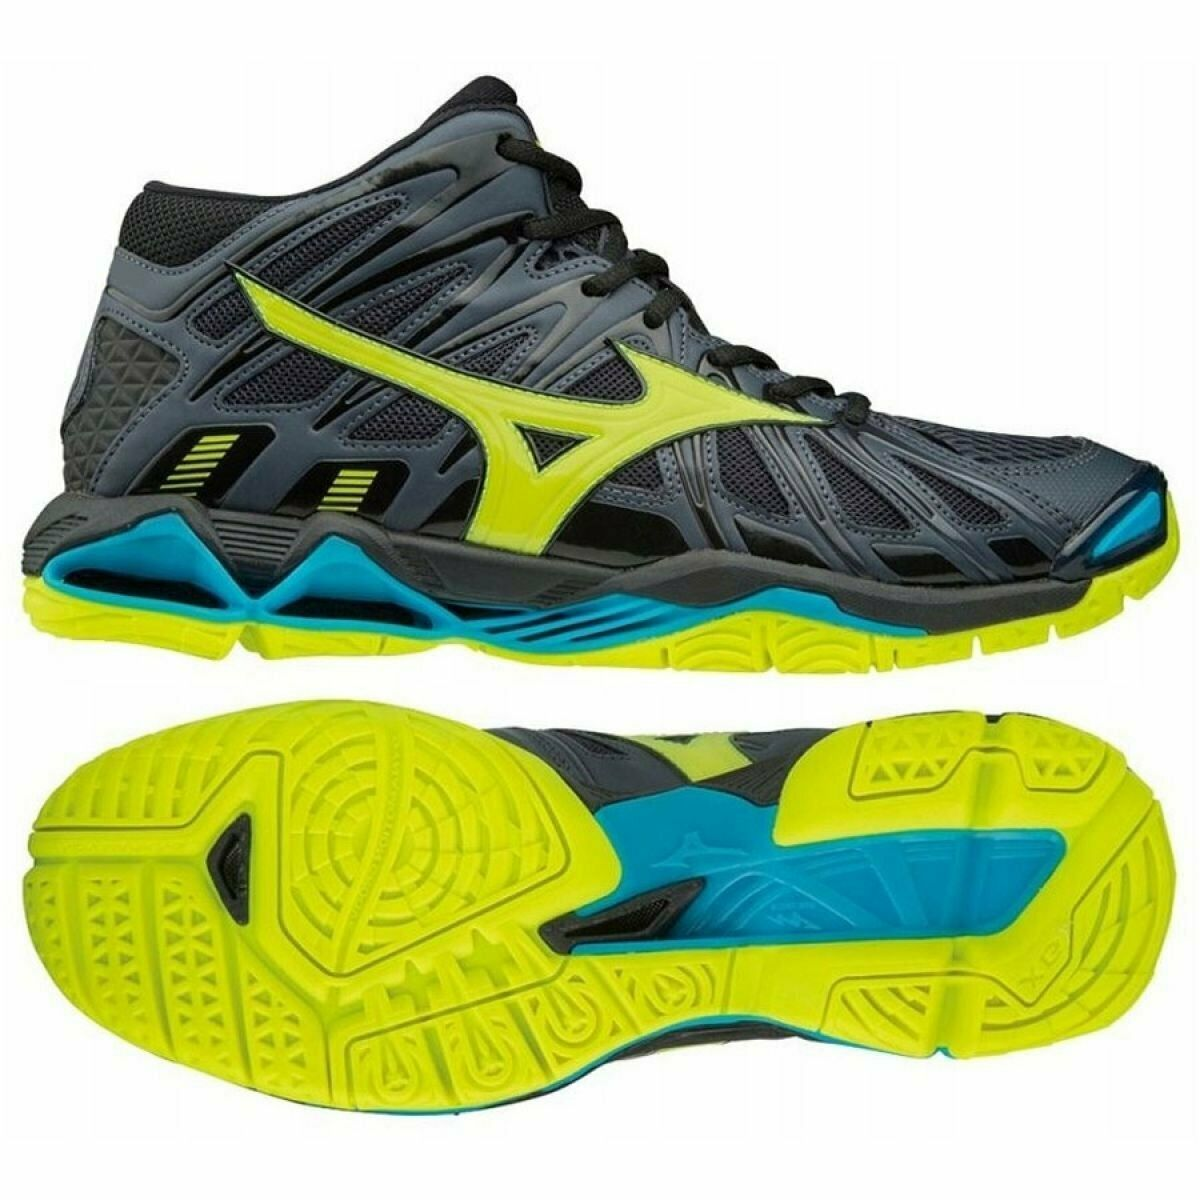 Volleyball Shoes Mizuno Wave Tornado X2 Mid M V1ga181747 Of Graphite Grey In 2020 Volleyball Shoes Mens Volleyball Shoes Mizuno Shoes